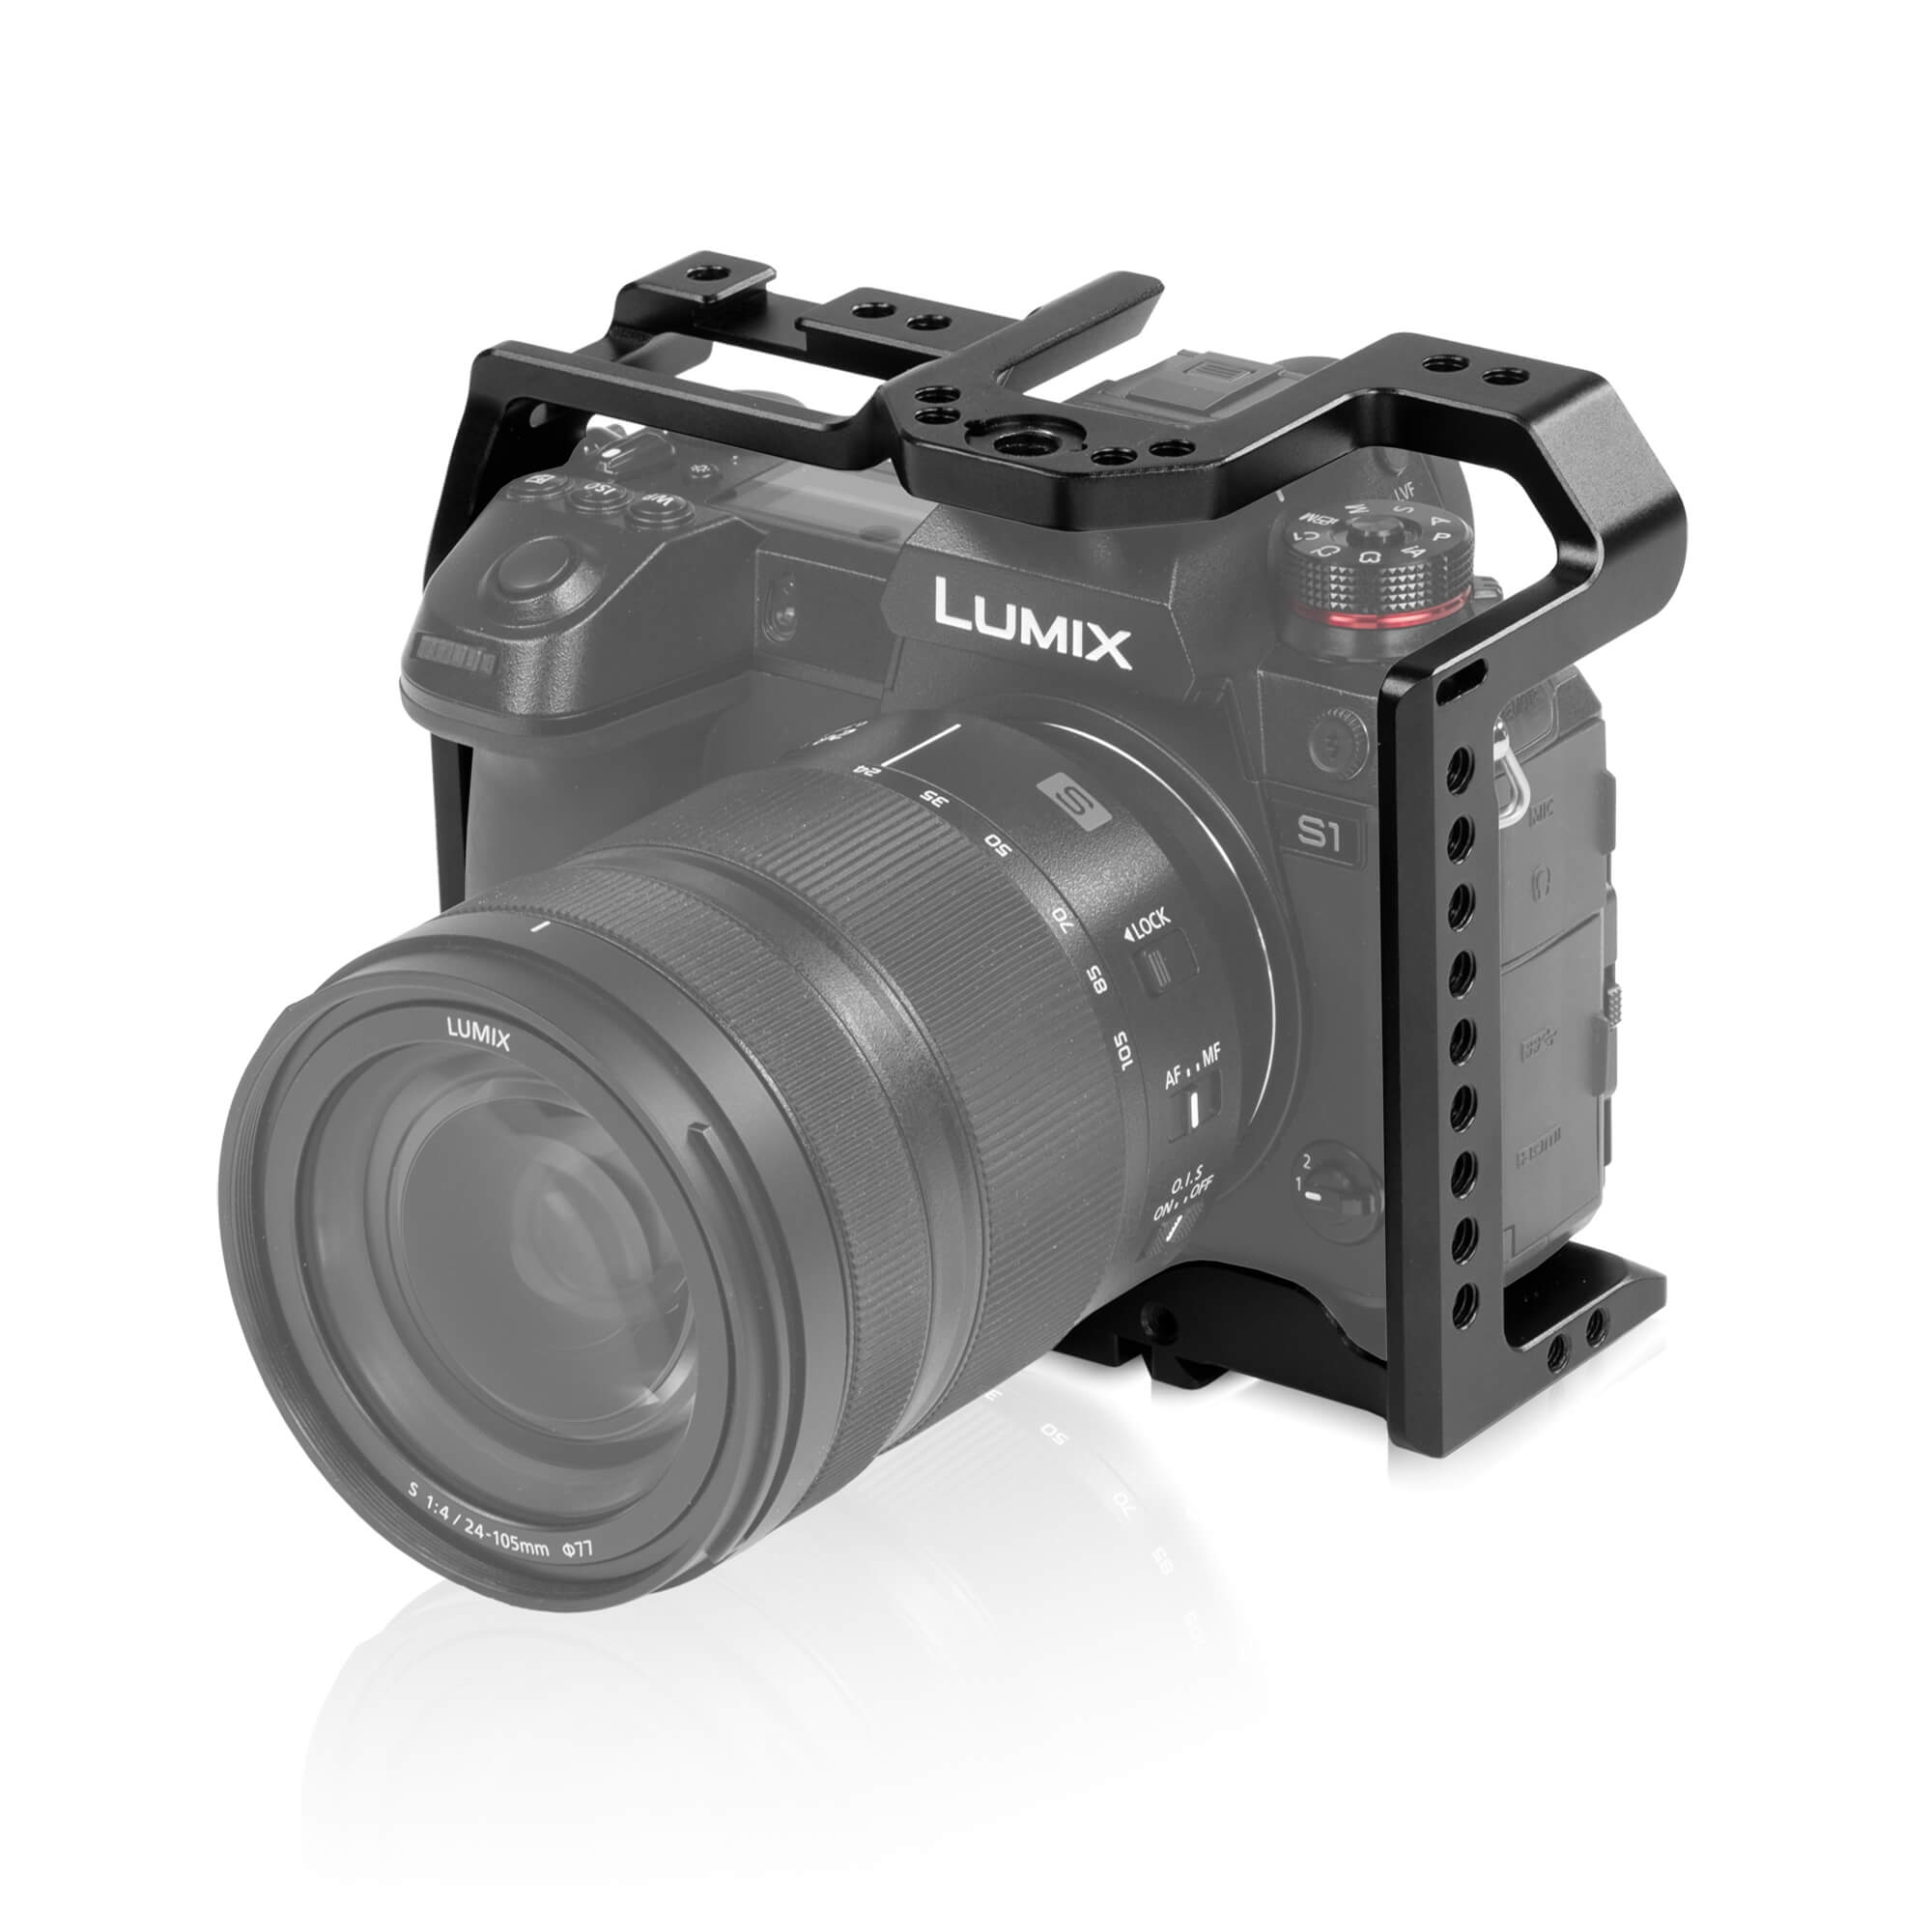 Shape: Low cost camera cage for Panasonic S1 and S1R plus other rig setups